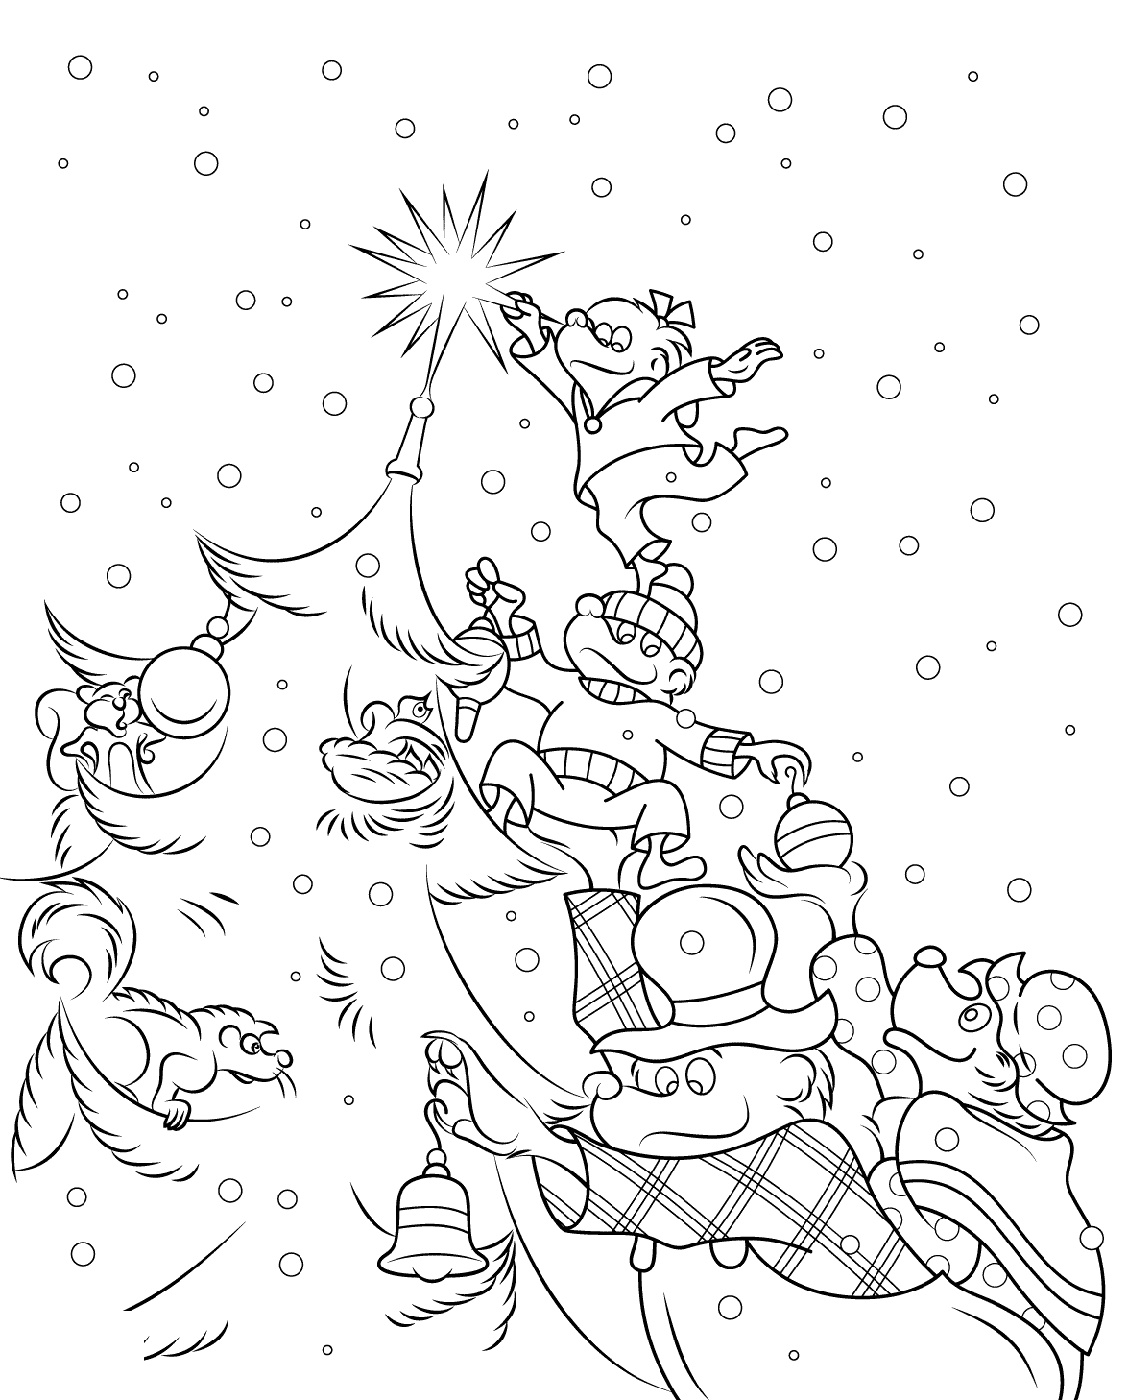 Berenstain Bears Coloring Pages Christmas Tree